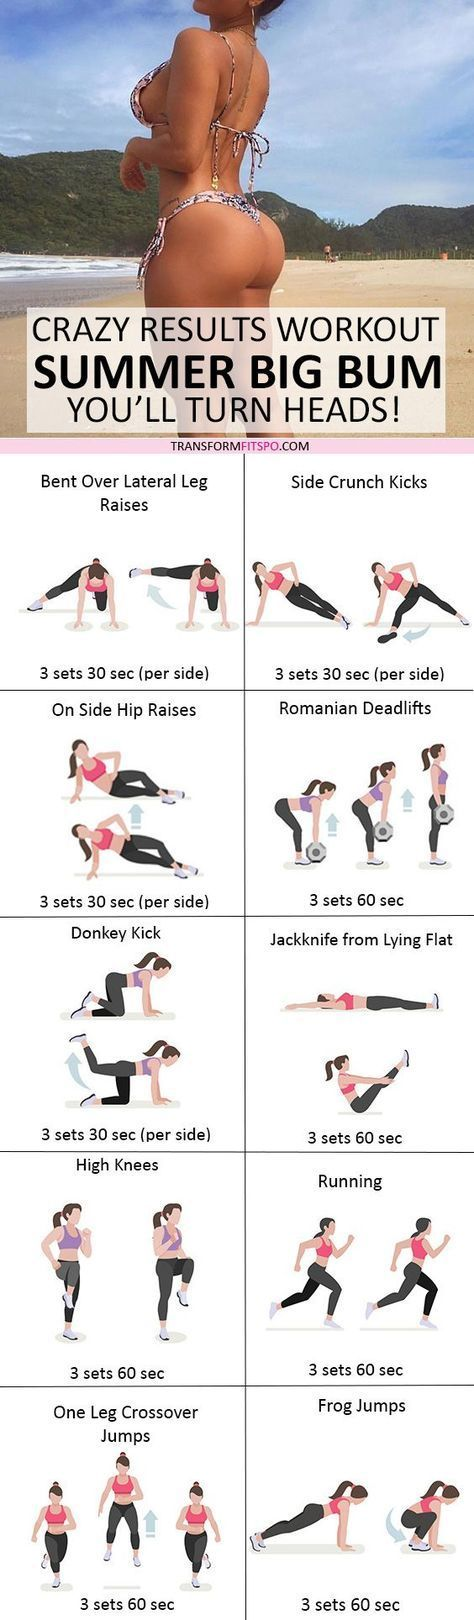 #womensworkout #workout #female fitness Repin and share if this workout gave you a summer big bum! Click the pin for the full workout. Being overweight or clinically obese is a condition that's caused by having a high calorie intake and low energy expenditure. In order to lose weight, you can either reduce your calorie intake, or else exercise regularly and reduce your calorie intake at the same time. It's always more beneficial to exercise as well. Many people don't exercise...